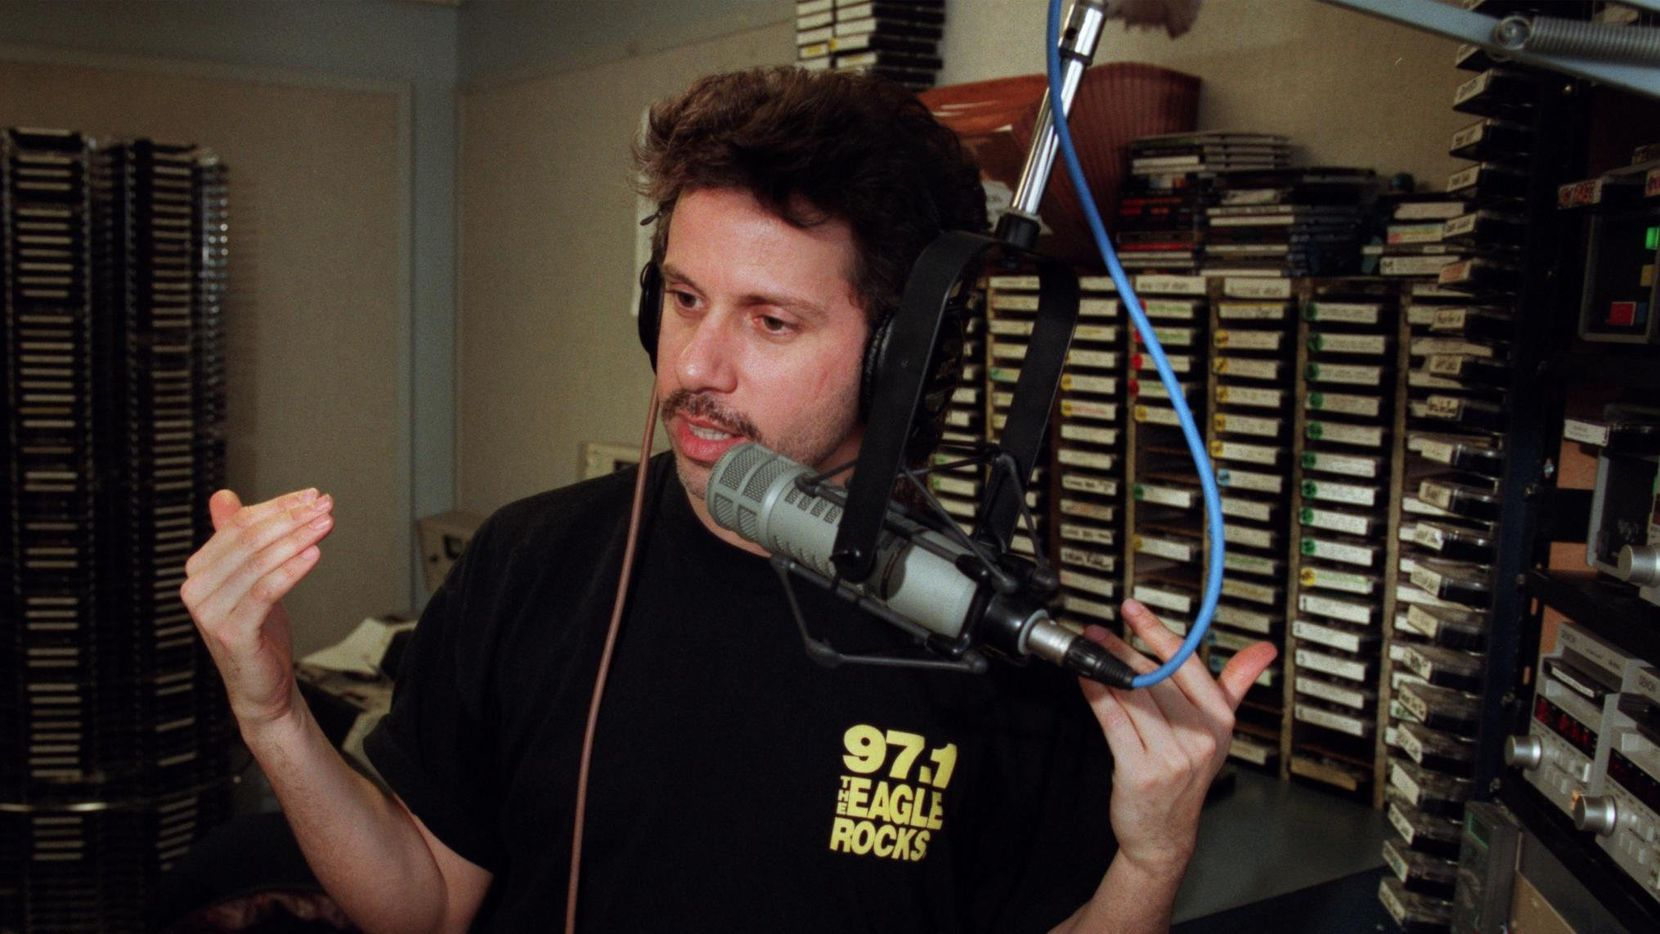 """Russ Martin pictured during his show on """"The Eagle"""" KEGL-FM (97.1) in a 2003 file photo."""